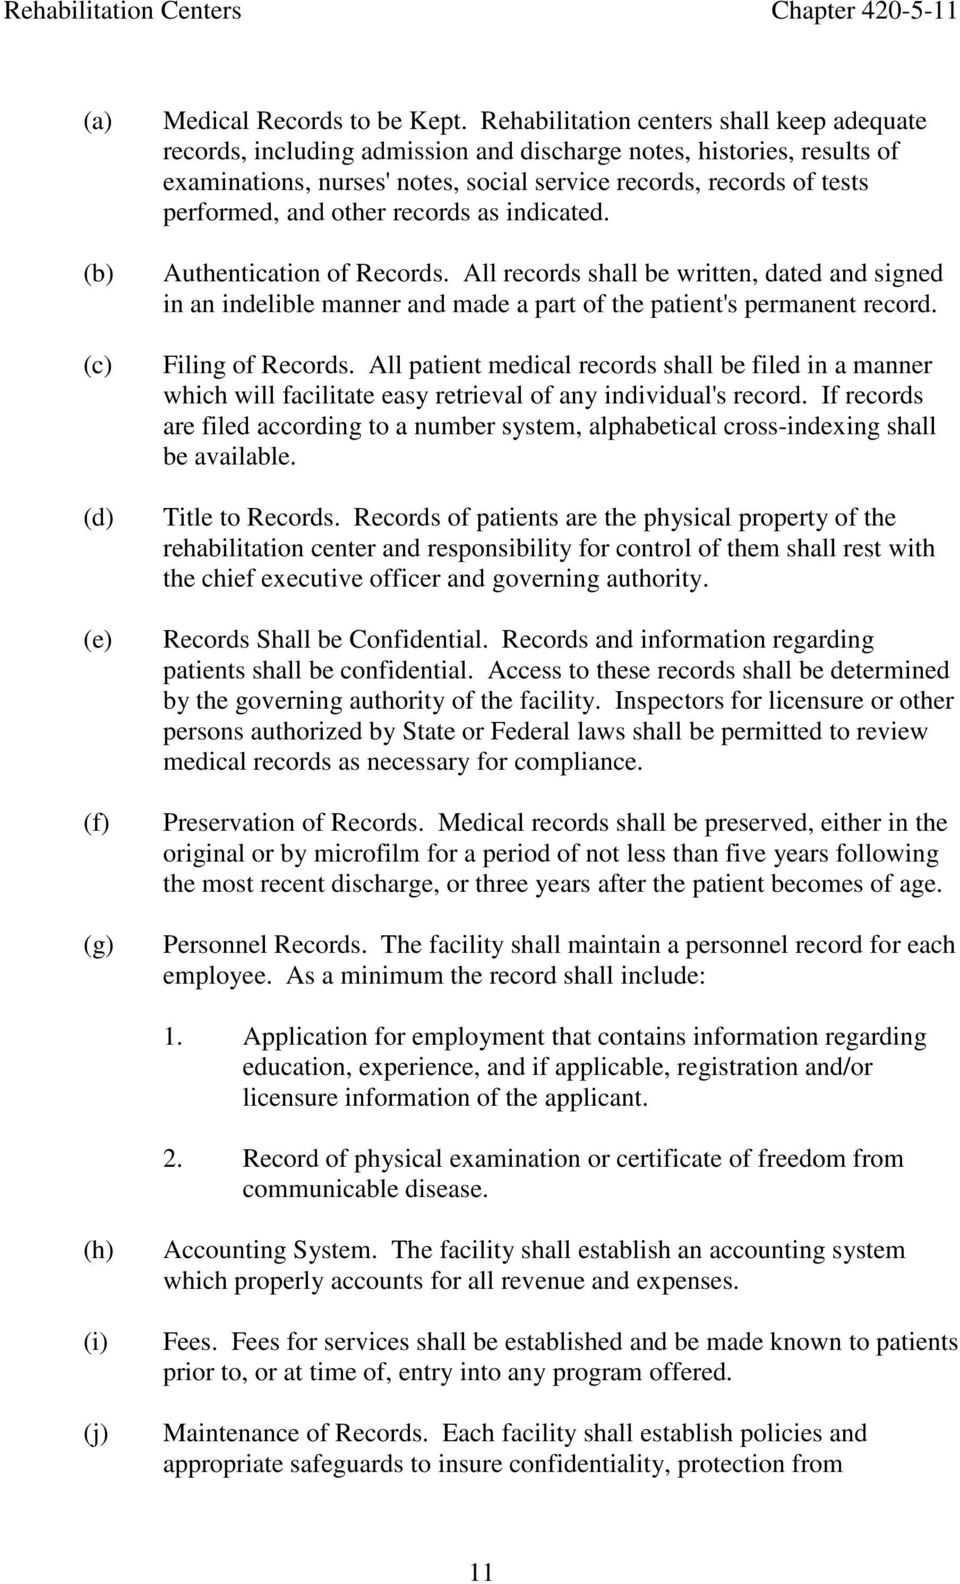 other records as indicated. Authentication of Records. All records shall be written, dated and signed in an indelible manner and made a part of the patient's permanent record. Filing of Records.